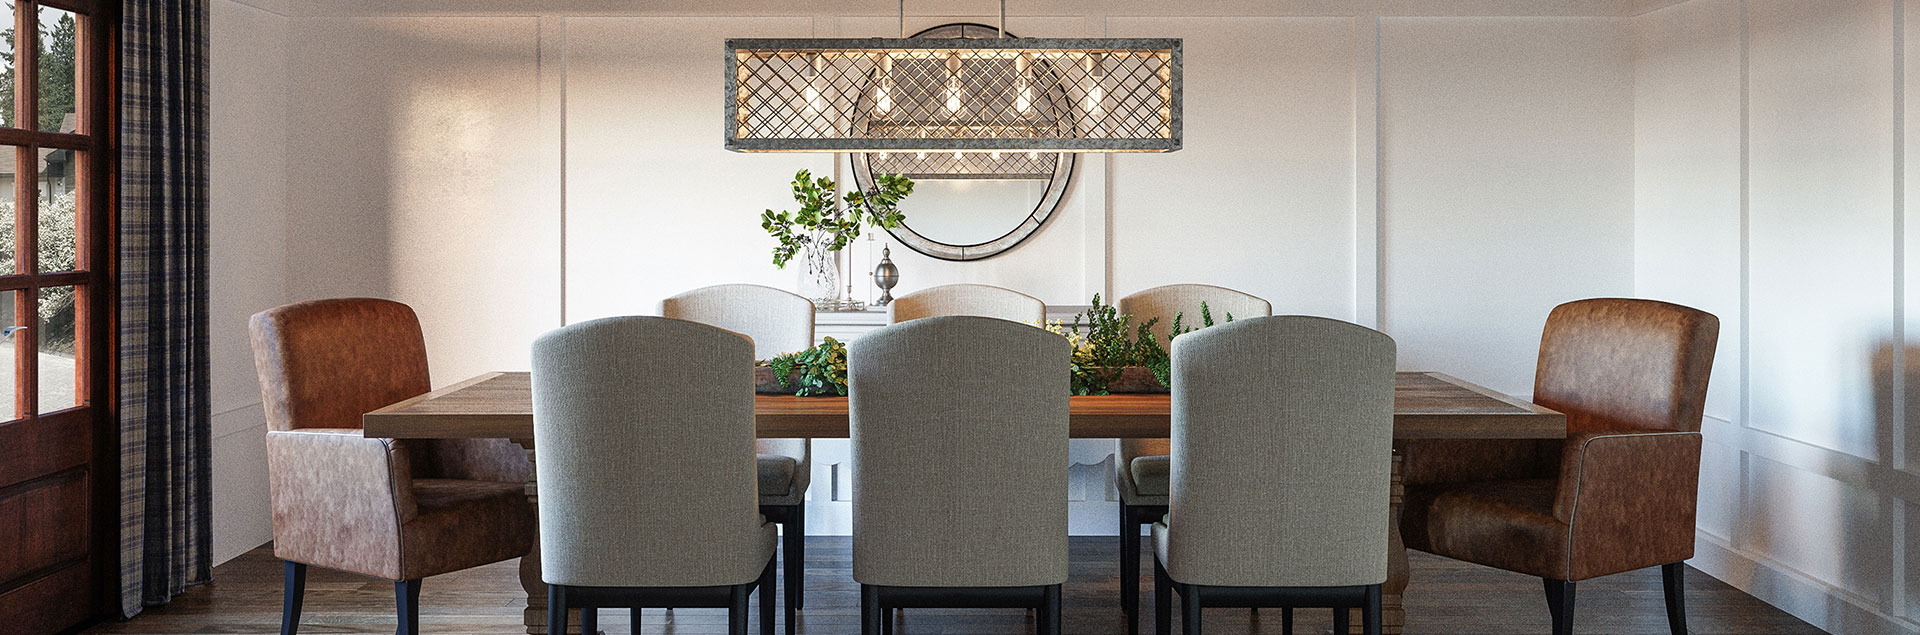 dining-room-subpage